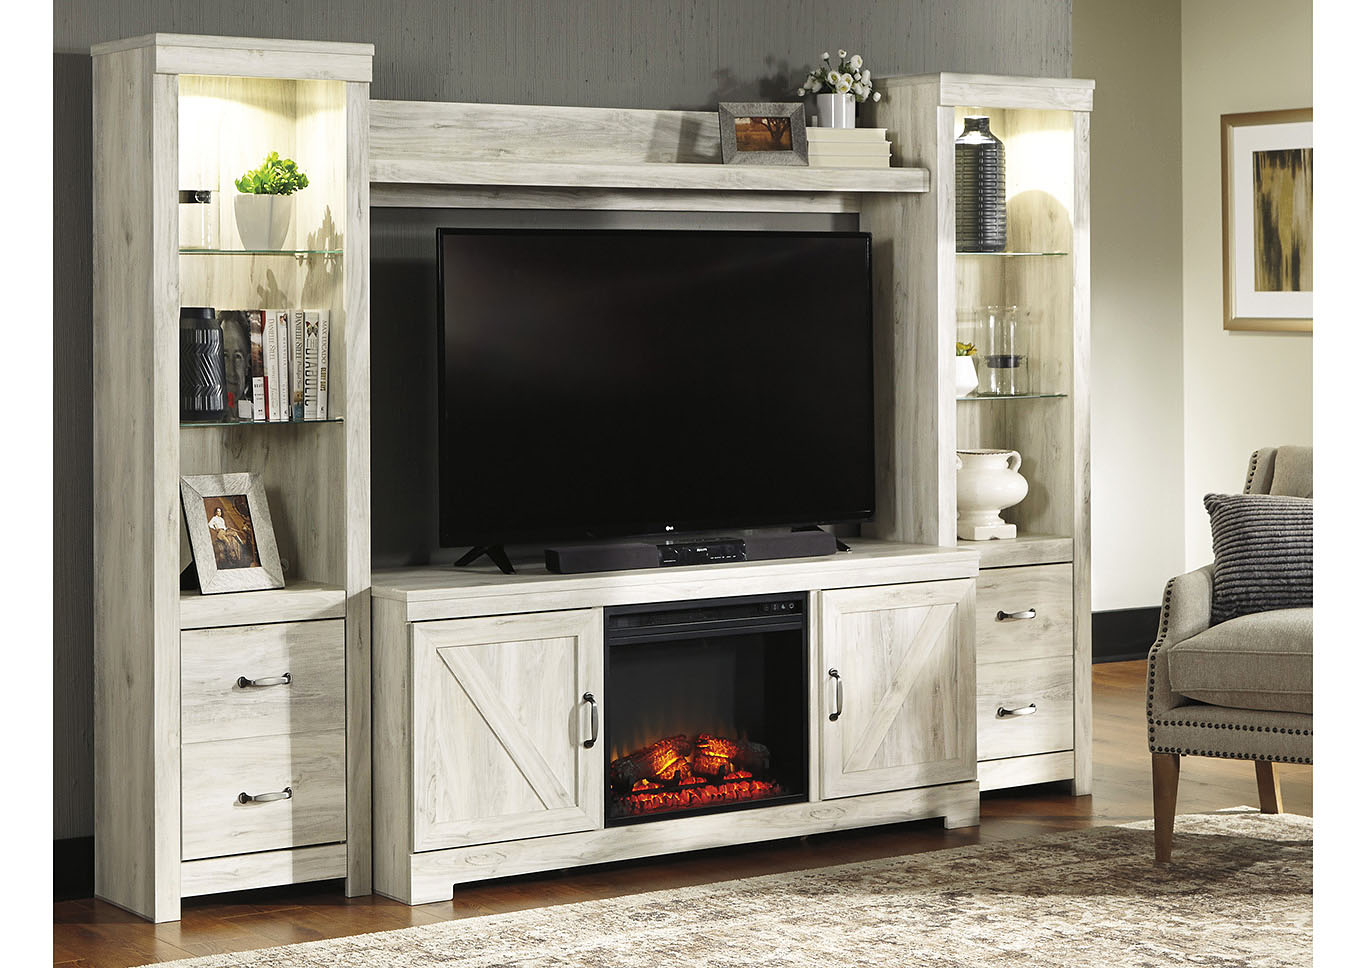 Bellaby Whitewash Entertainment Center w/Black Fireplace Insert,Signature Design By Ashley